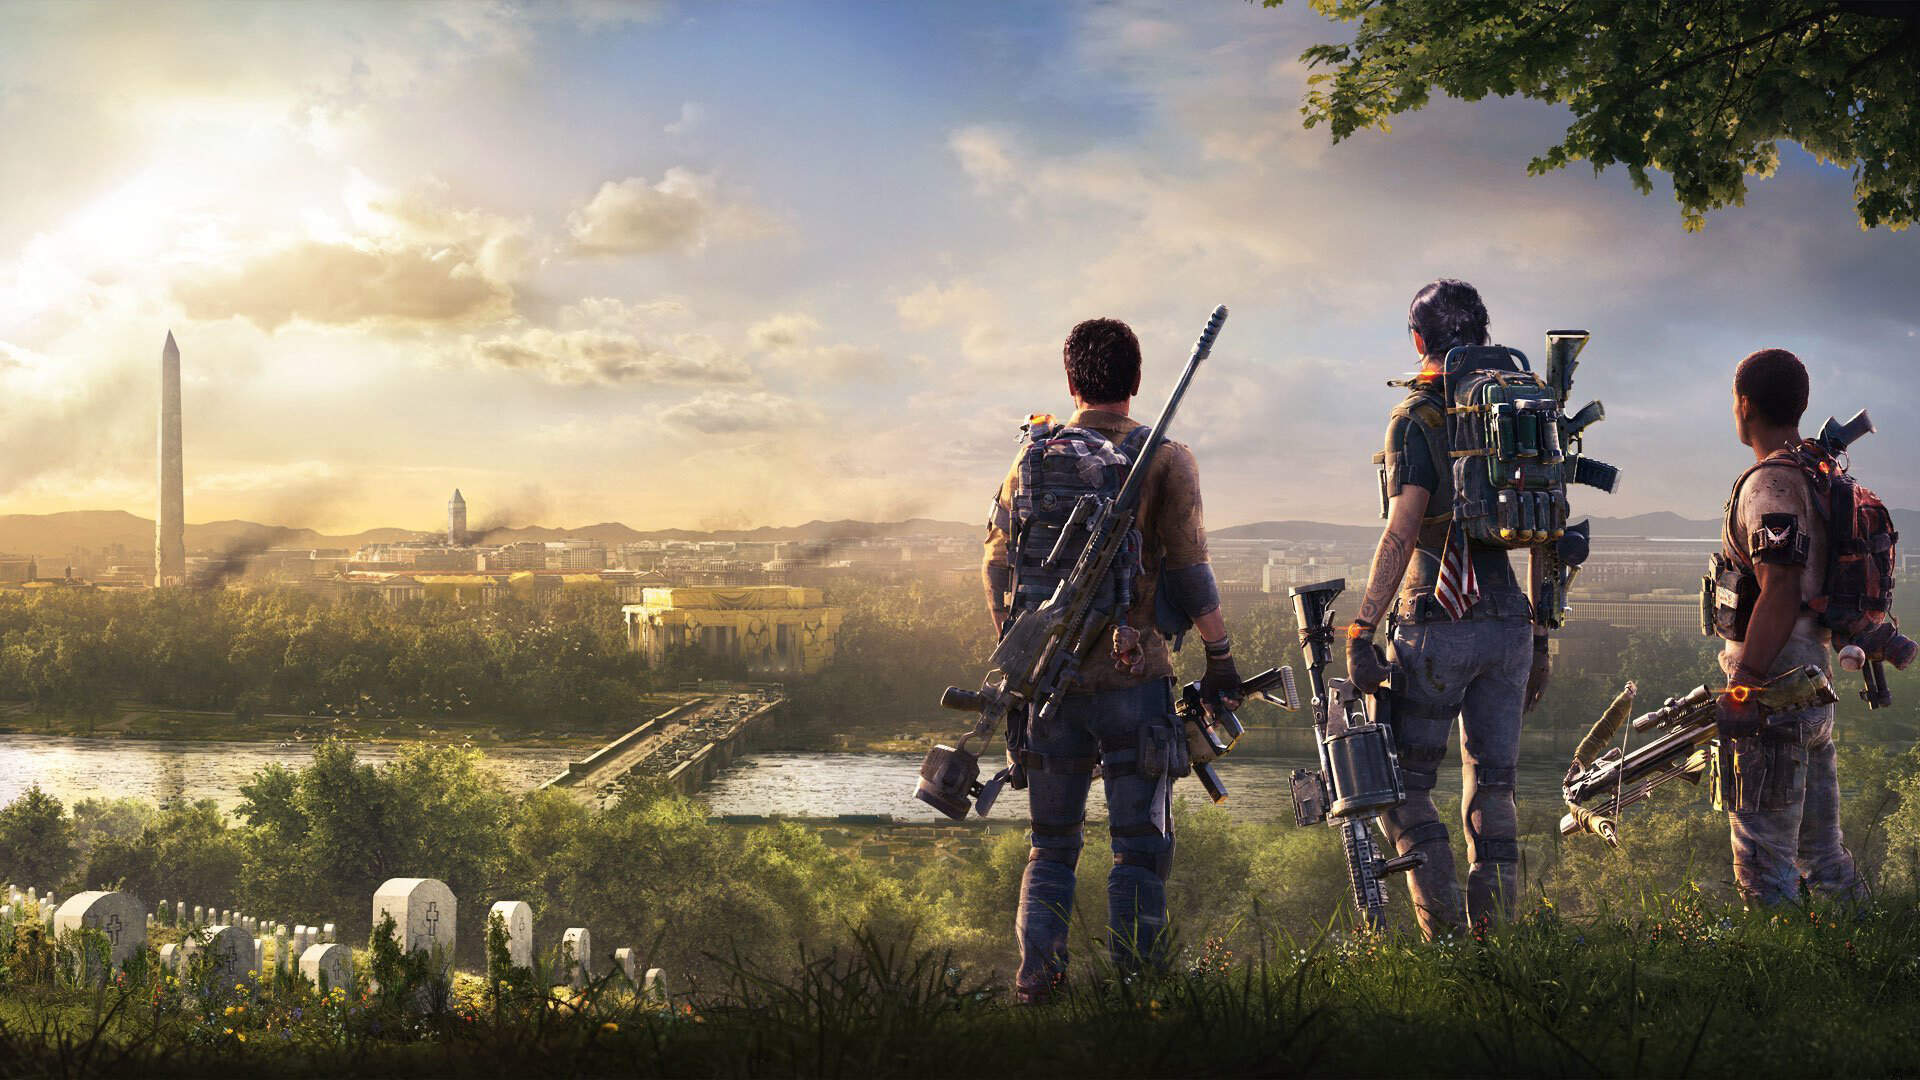 The Division 2 PvP Preview: Three Dark Zones, Gear Normalization, and the Endgame Occupied DZ